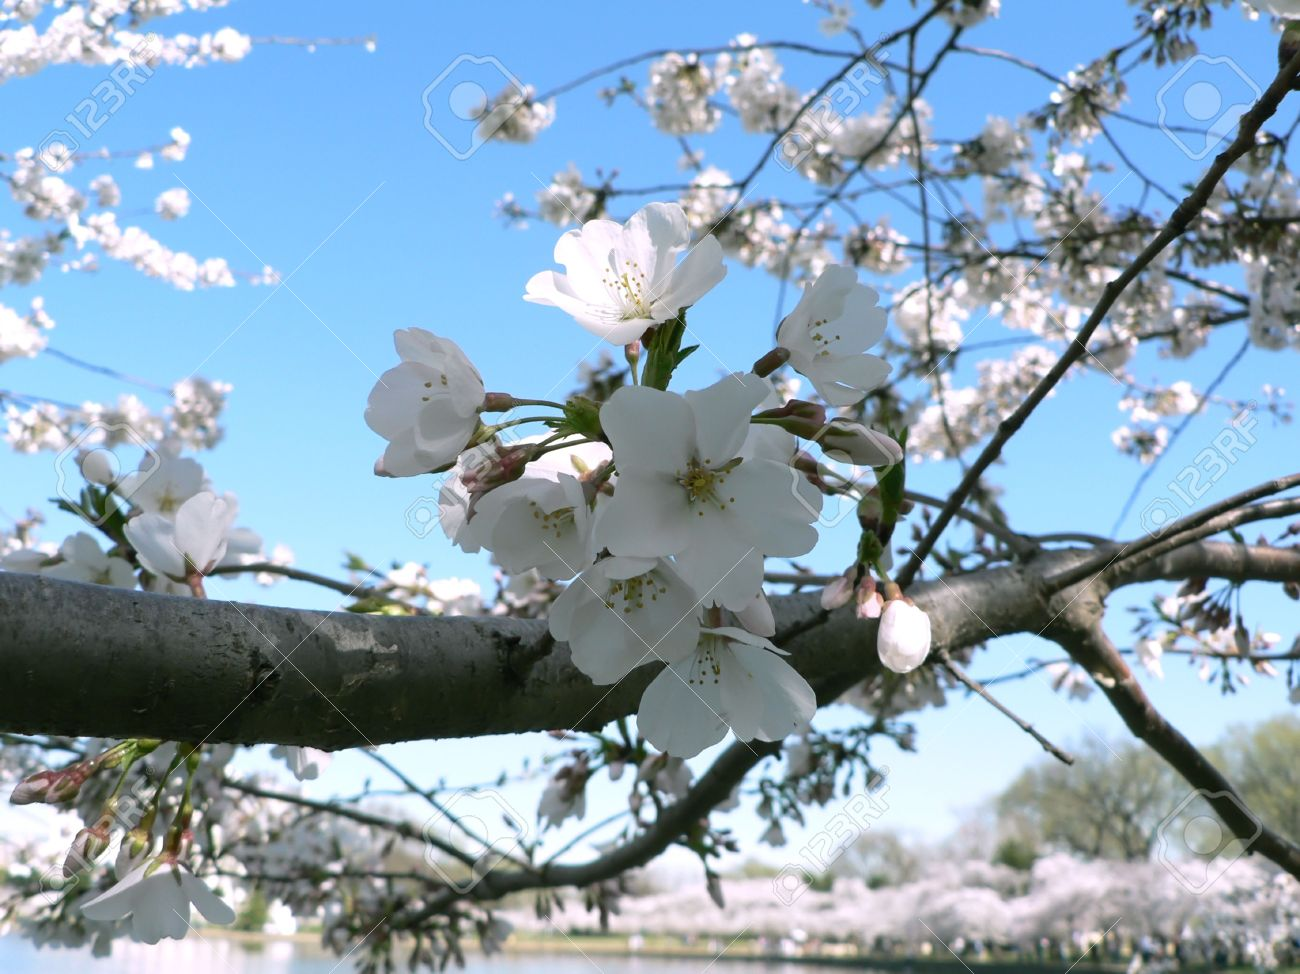 Photo Of Early Blooming Cherry Blossoms In Washington Dc During